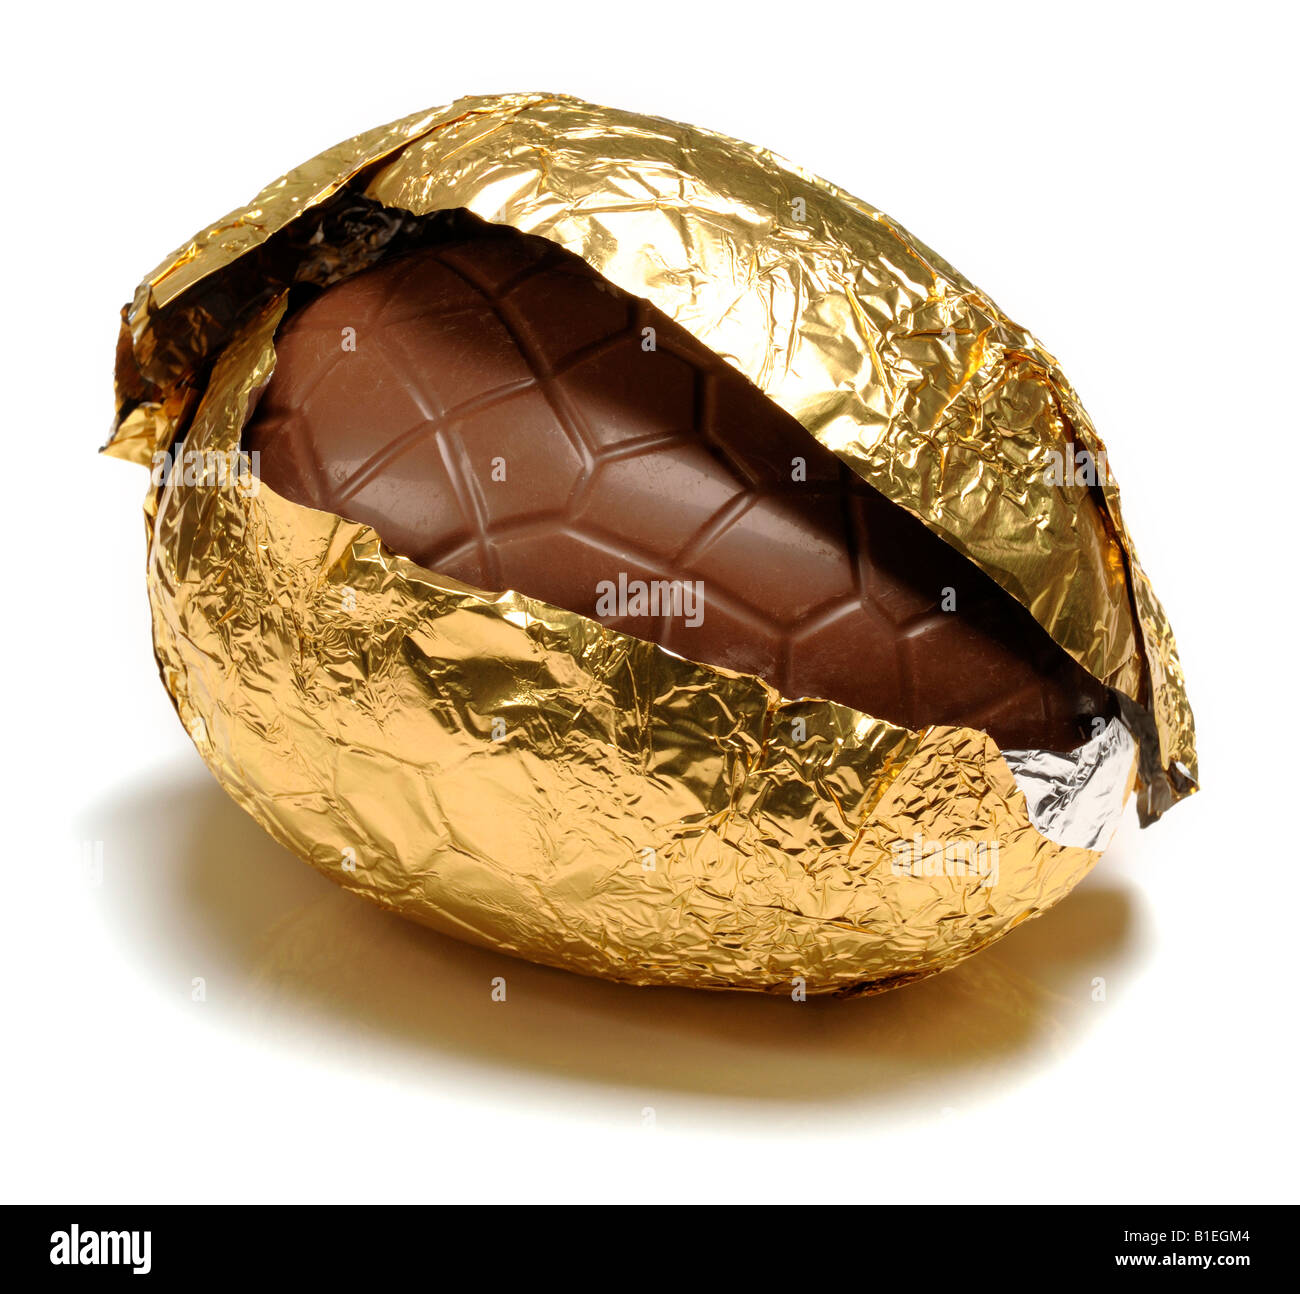 chocolate easter egg - Stock Image